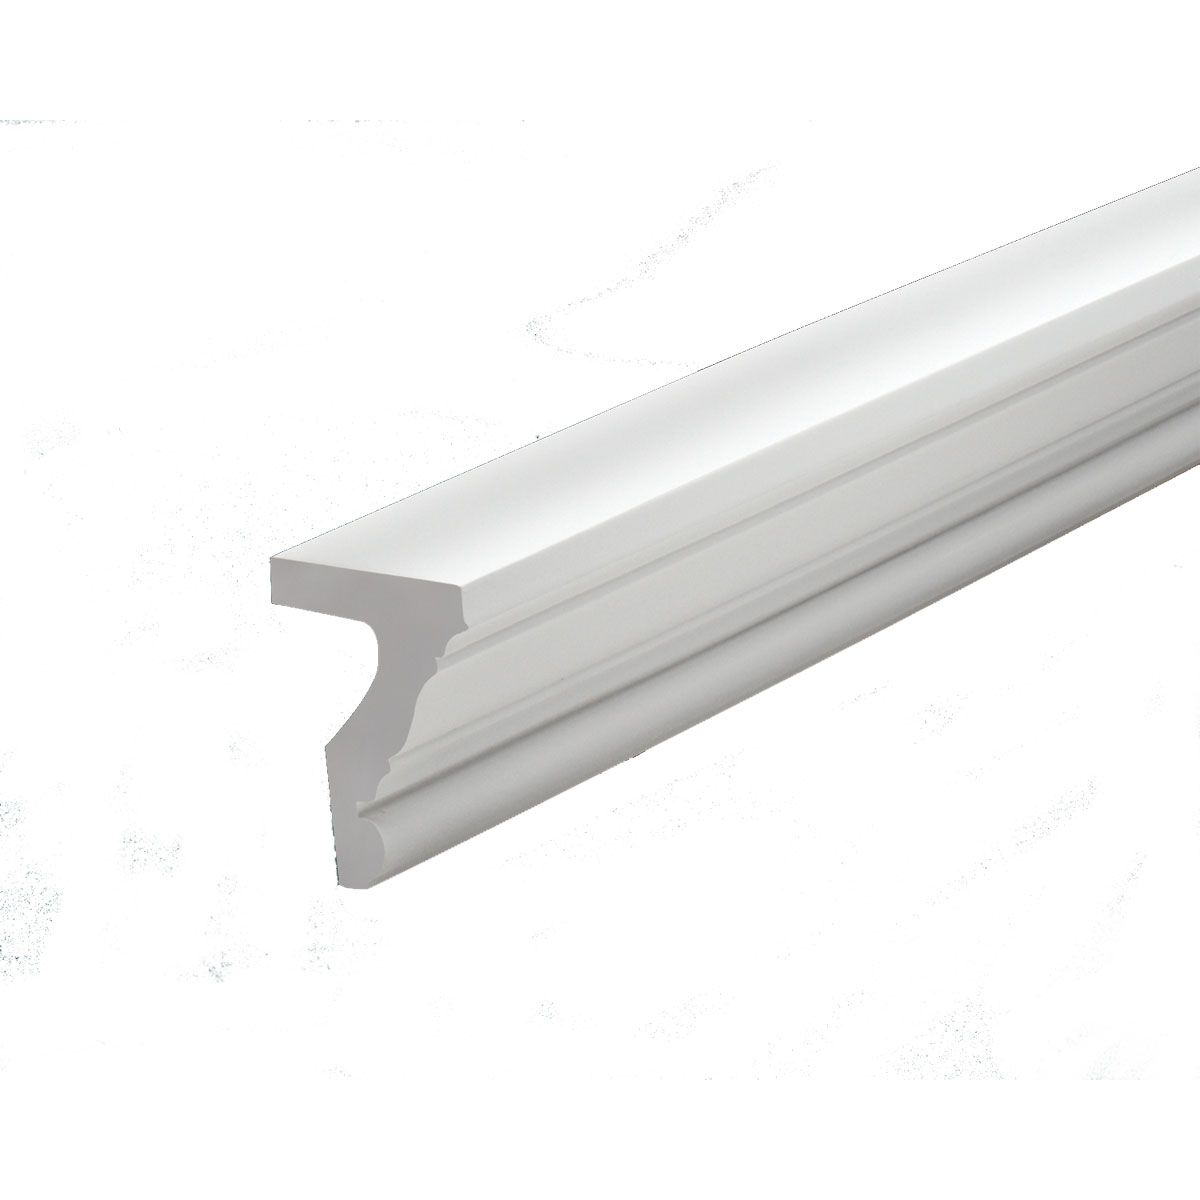 5 1 2 Inch H X 4 3 8 Inch P X 12 Apos Length Fascia Moulding Wall Molding Fireplace Remodel Fascia